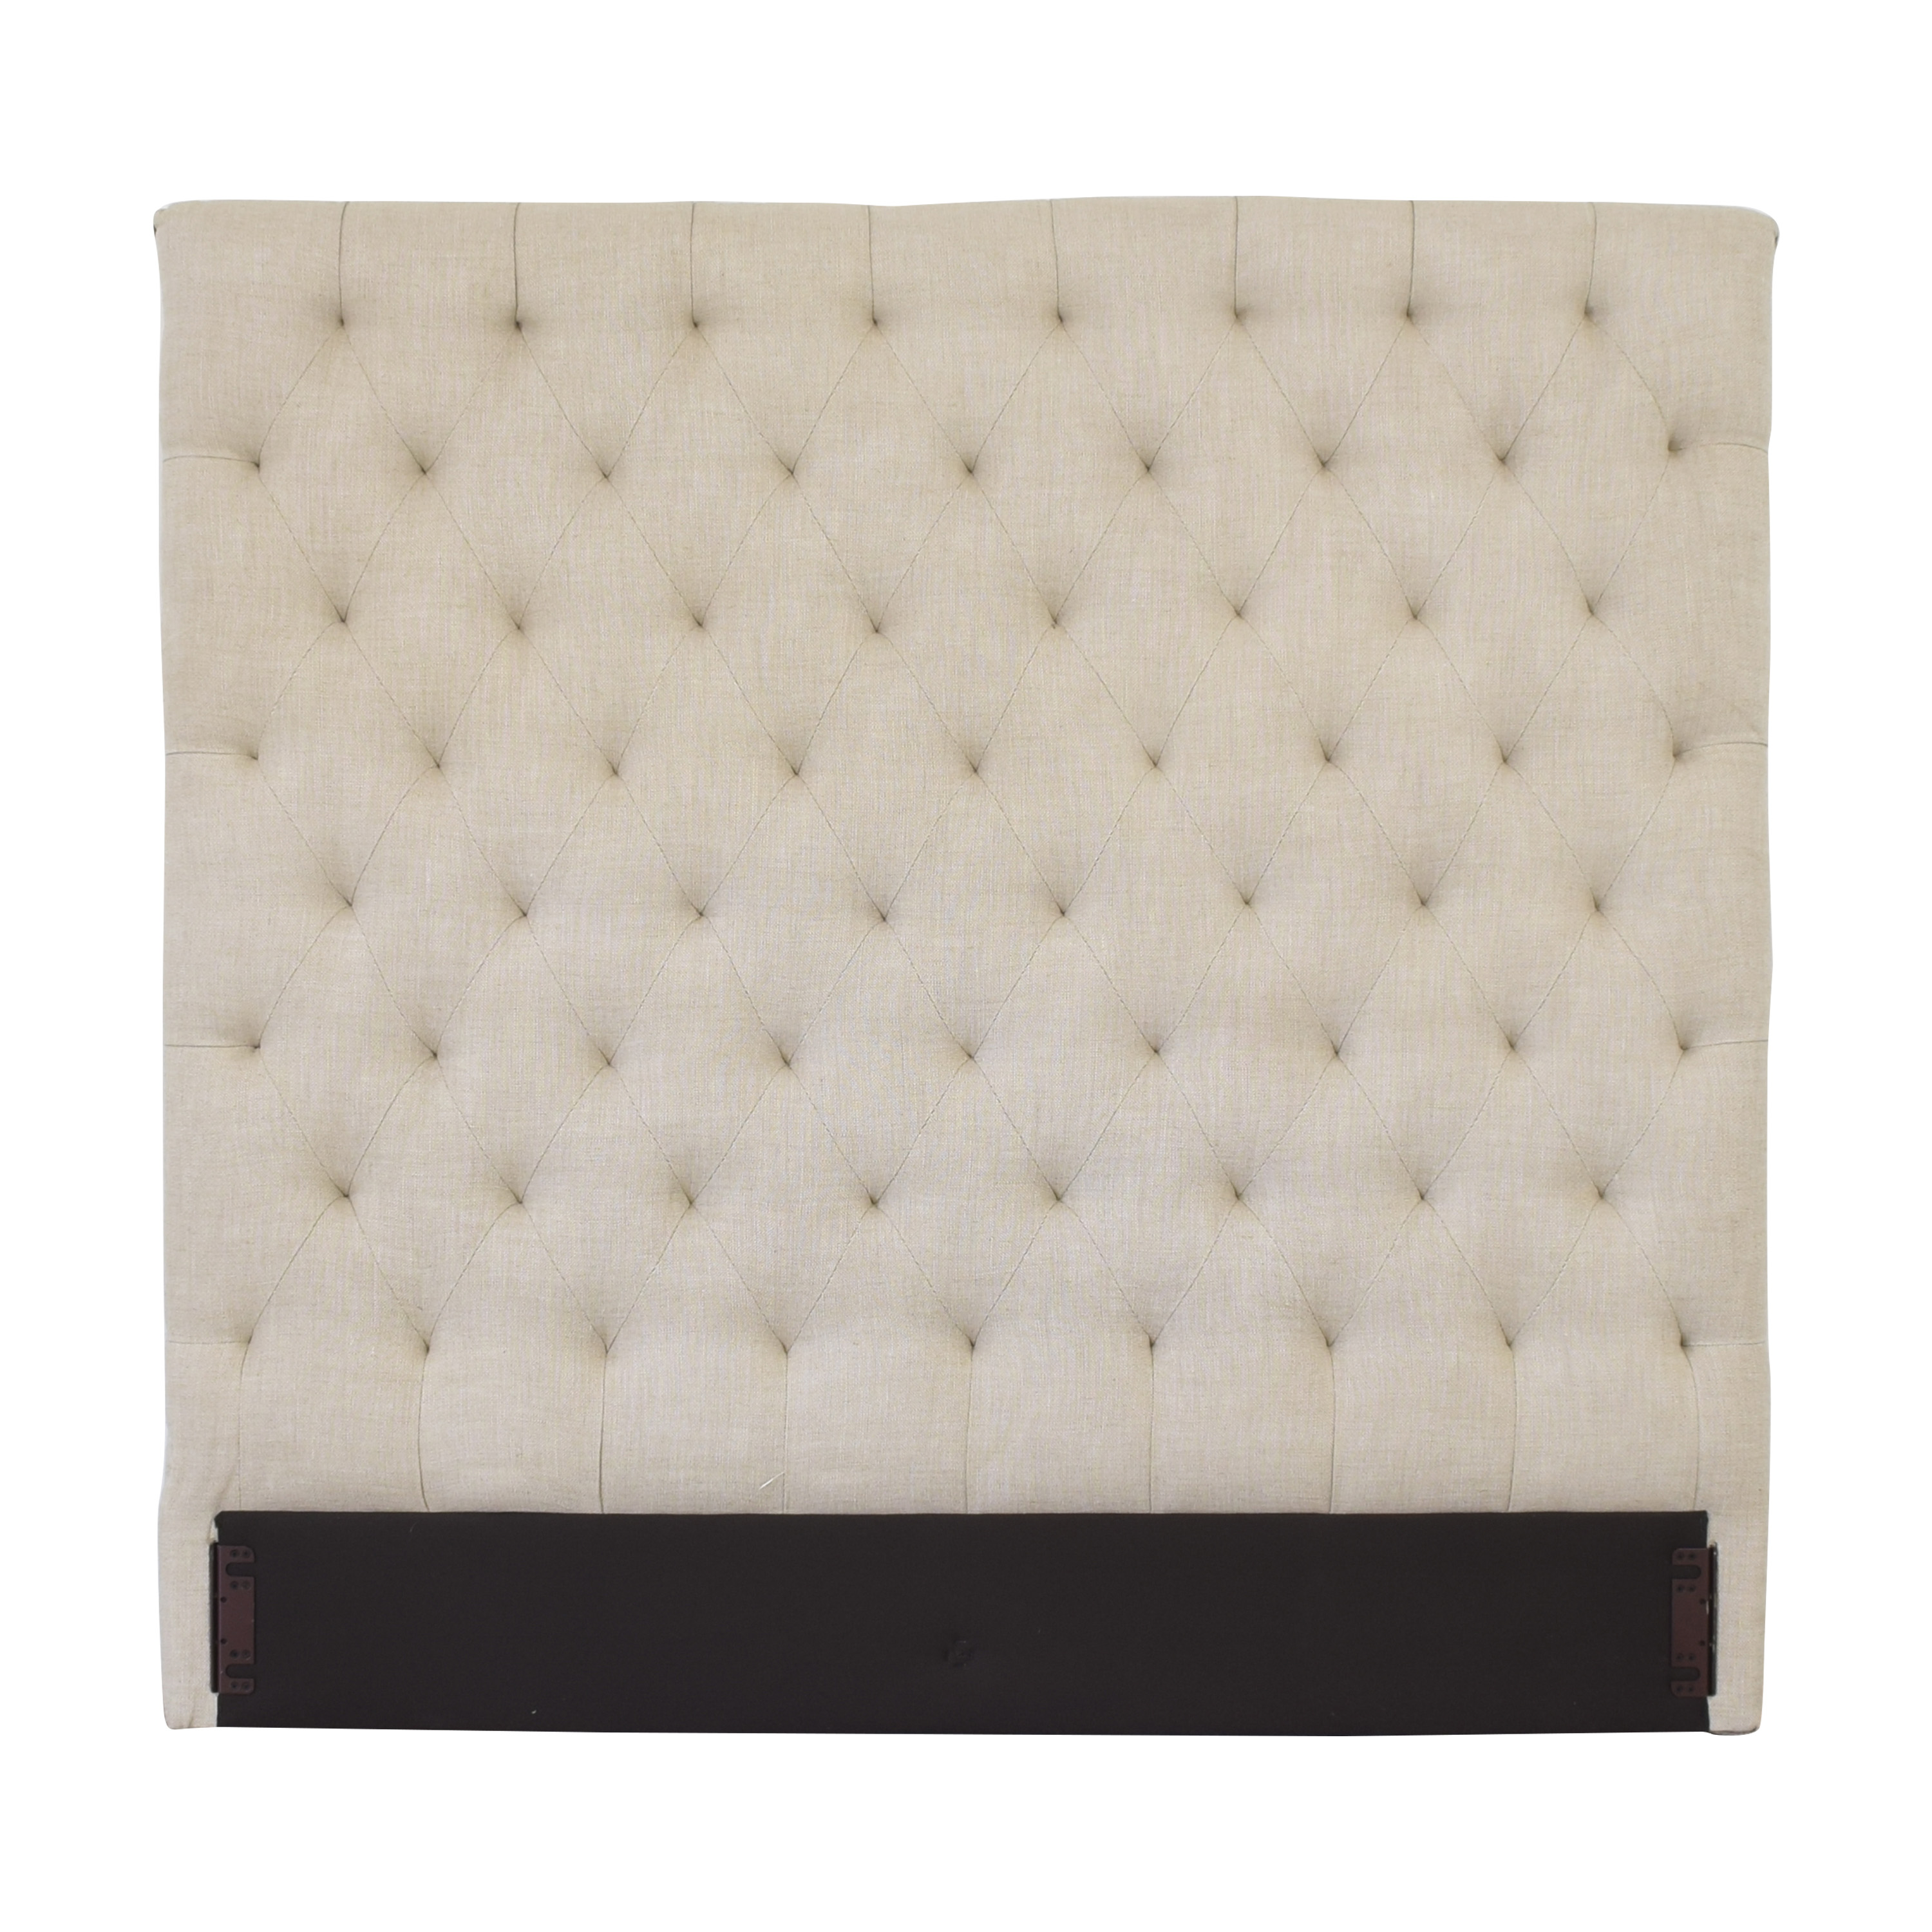 Restoration Hardware Restoration Hardware Chesterfield Queen Headboard dimensions